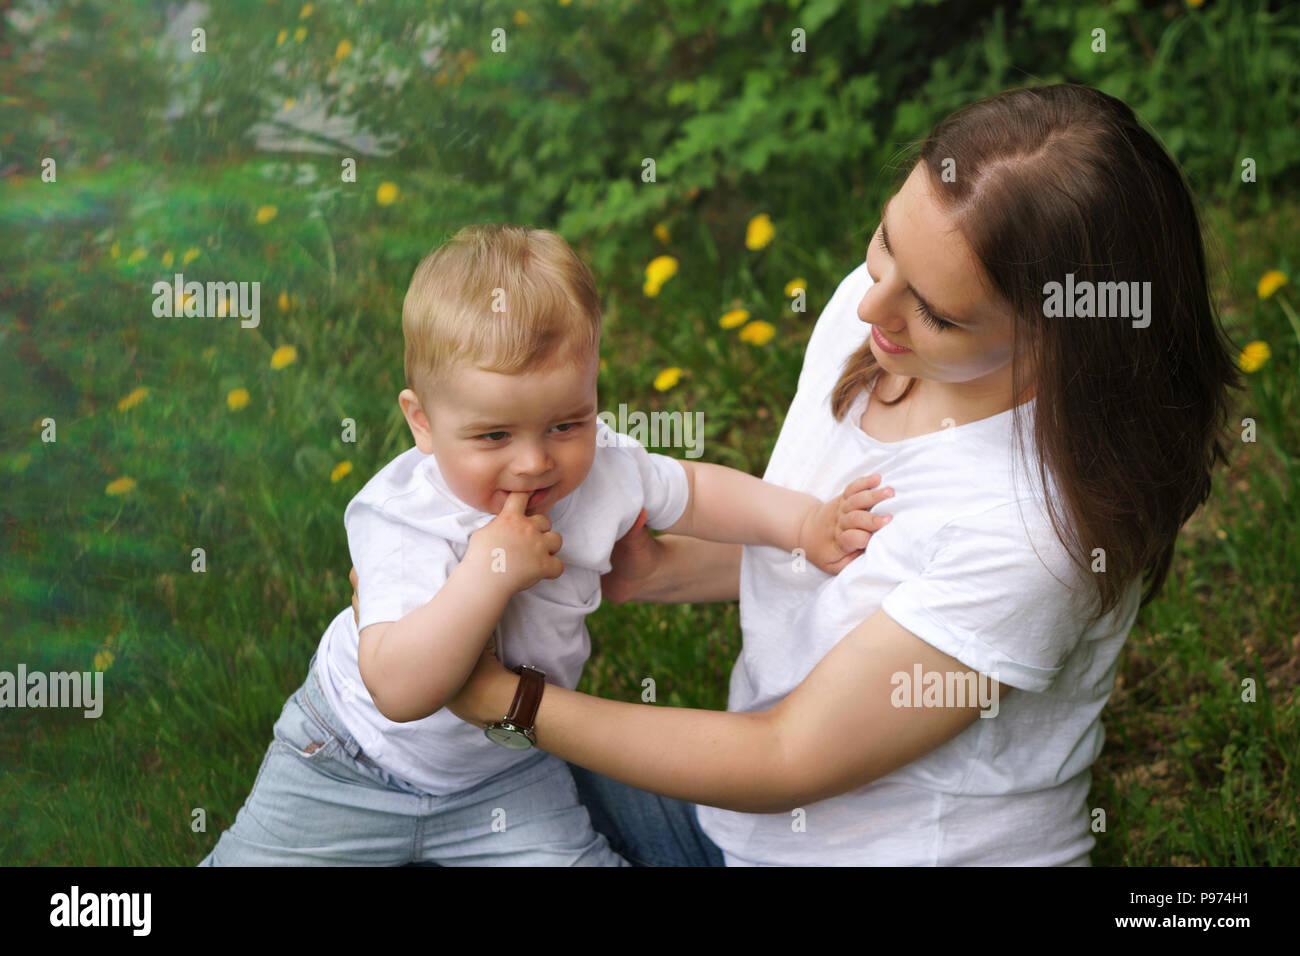 Young pregnant girl sits on lawn in city park. Mother supports her son. Little boy bites his finger. Happy motherhood. Blur effect Stock Photo